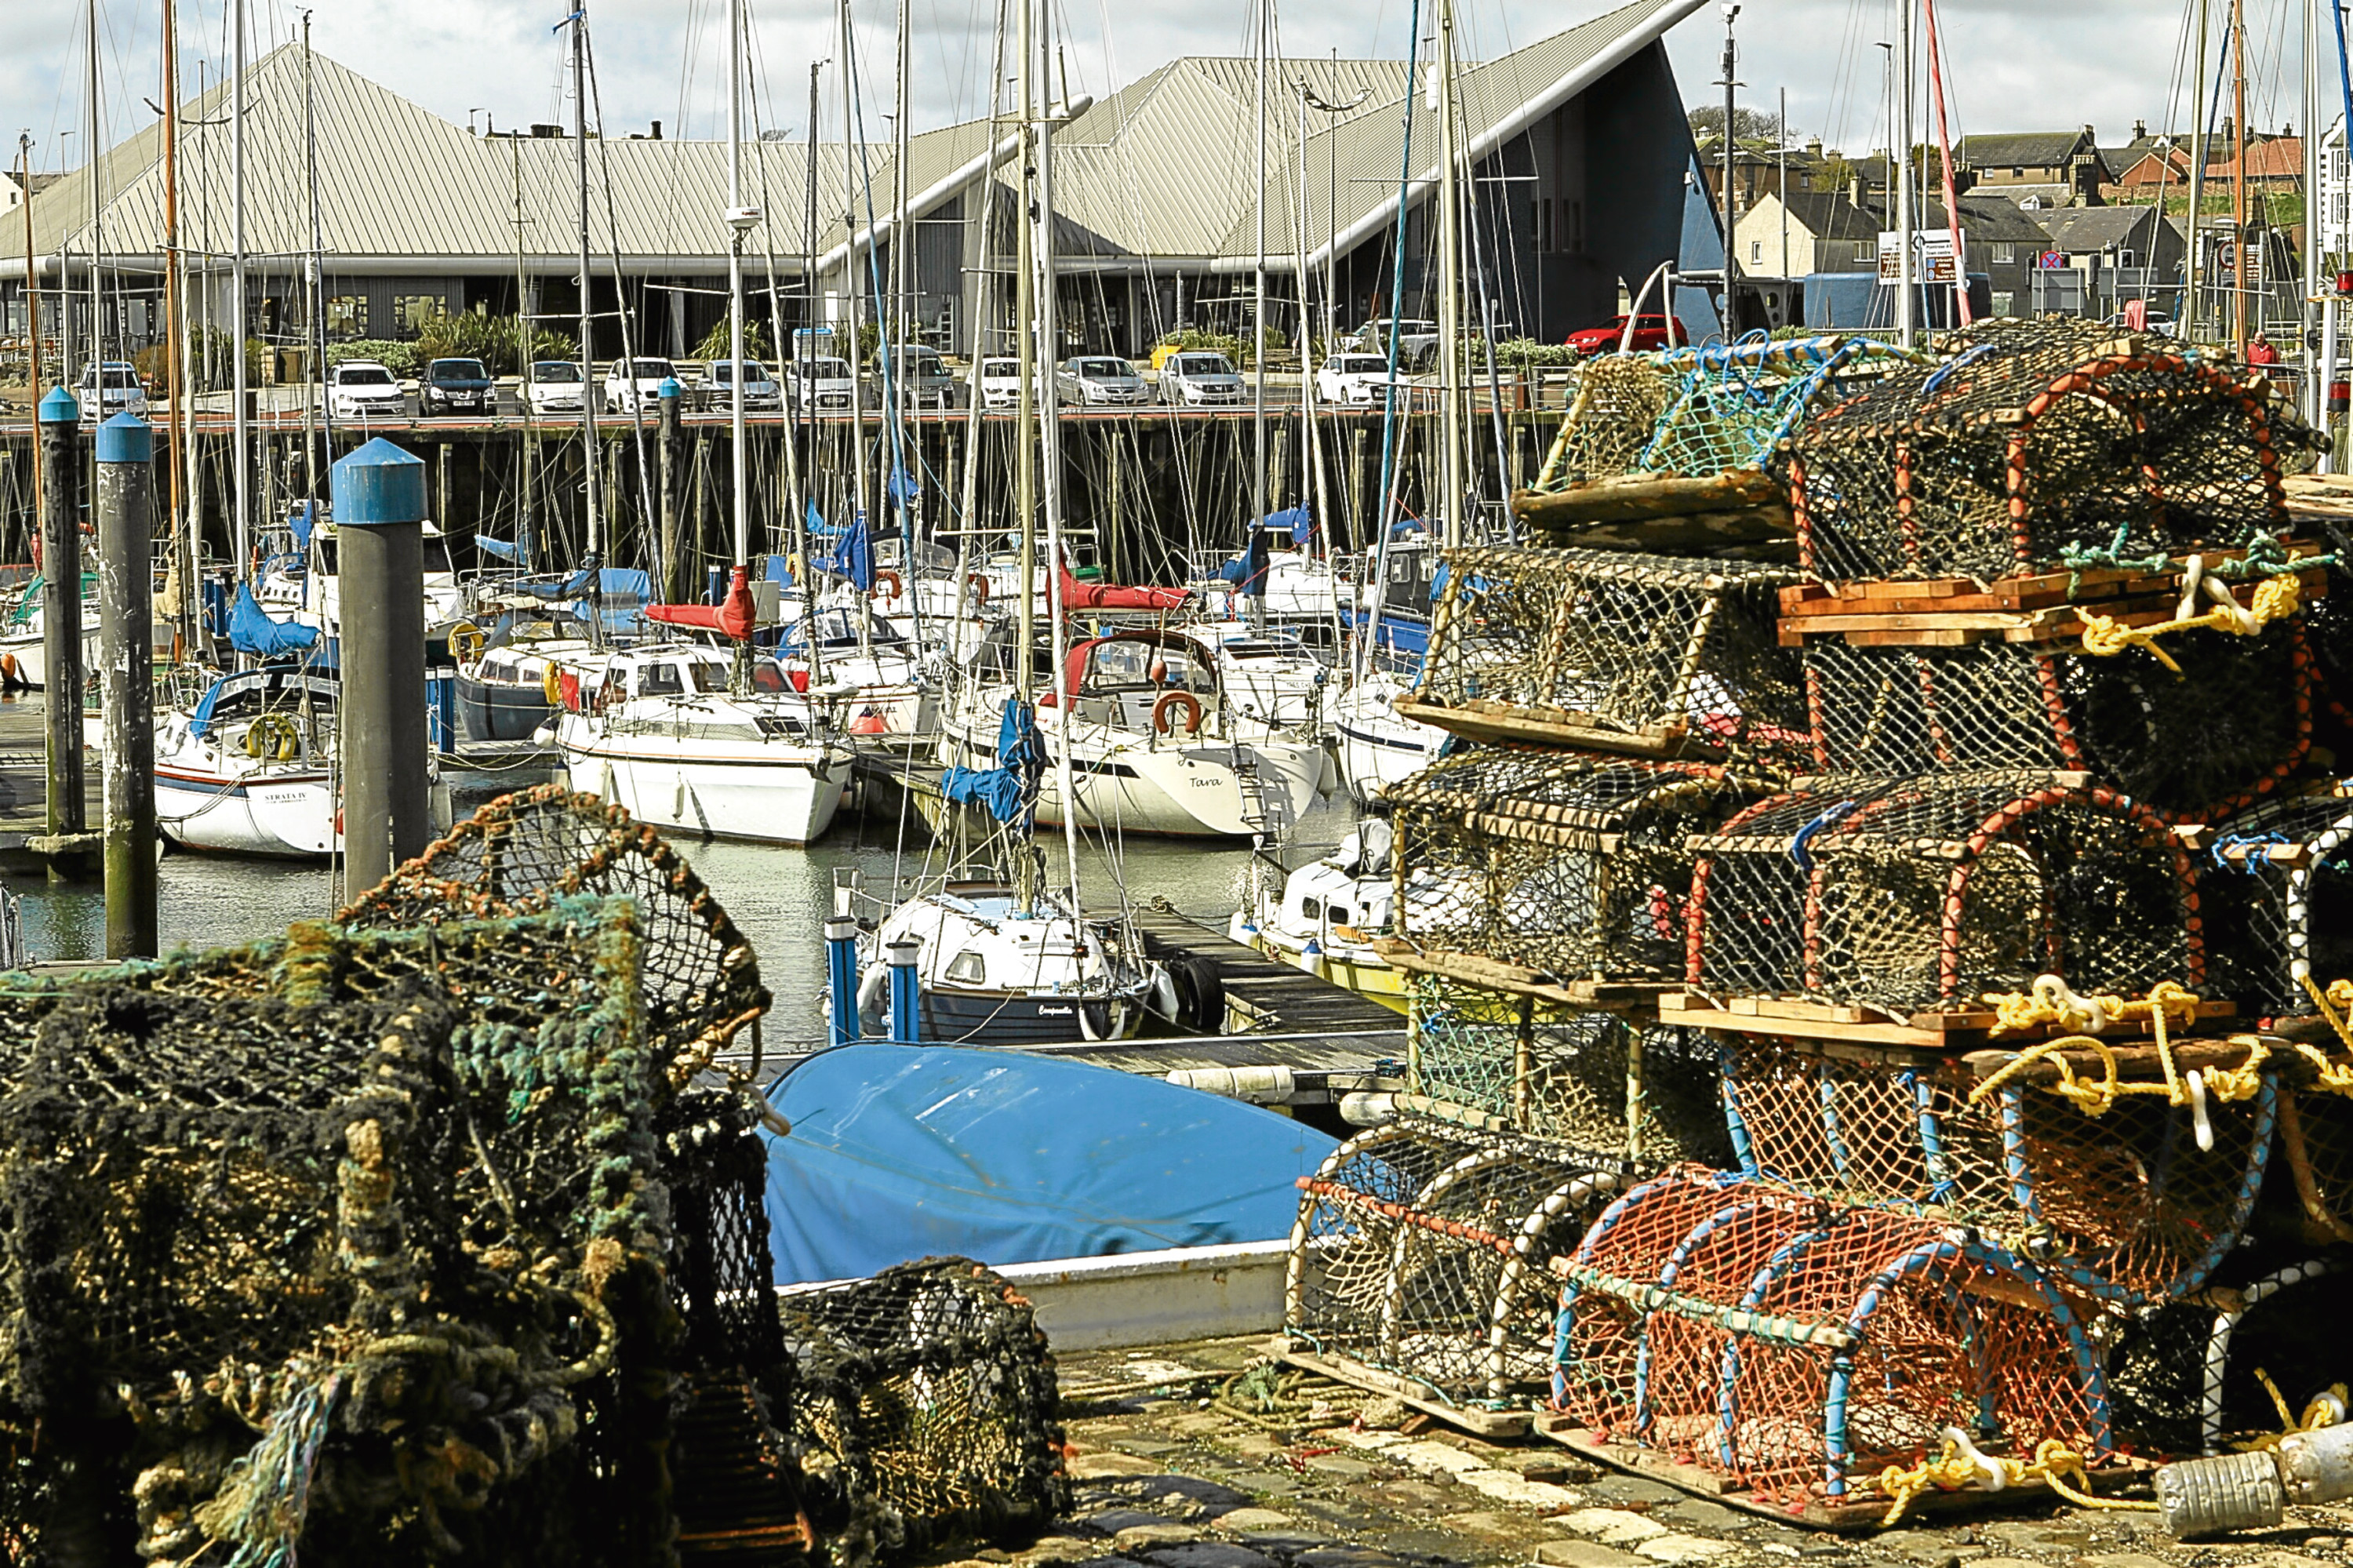 Creels on the quayside at Arbroath.